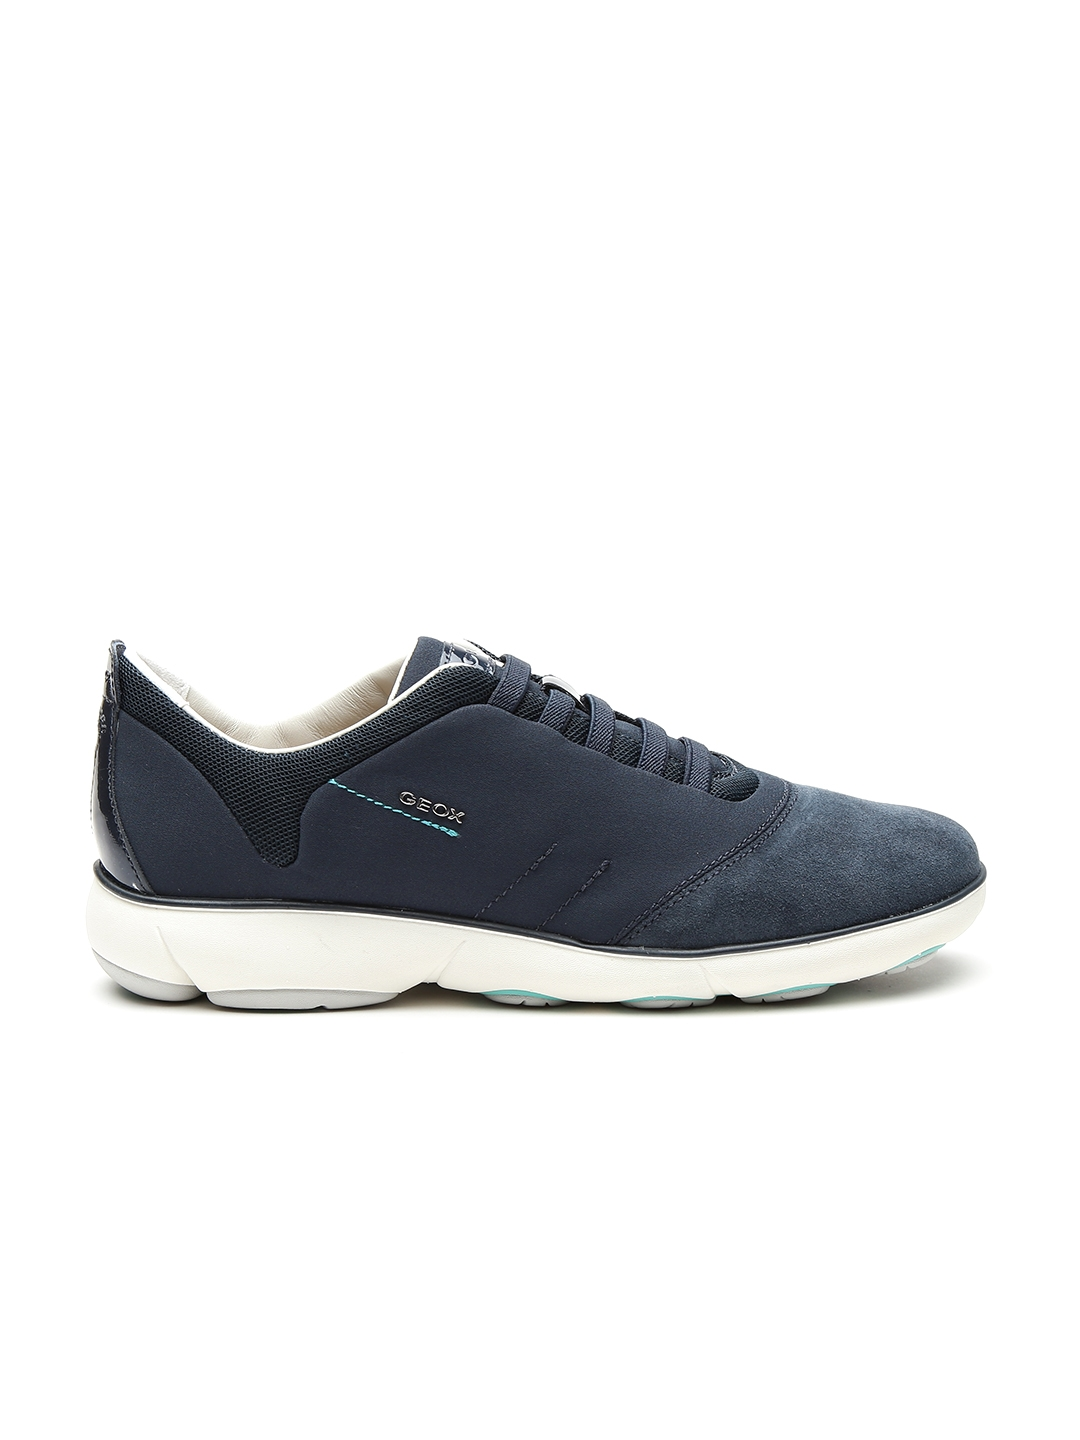 GEOX Nebula Respira Women Navy Breathable Italian Patent Leather Casual Shoes